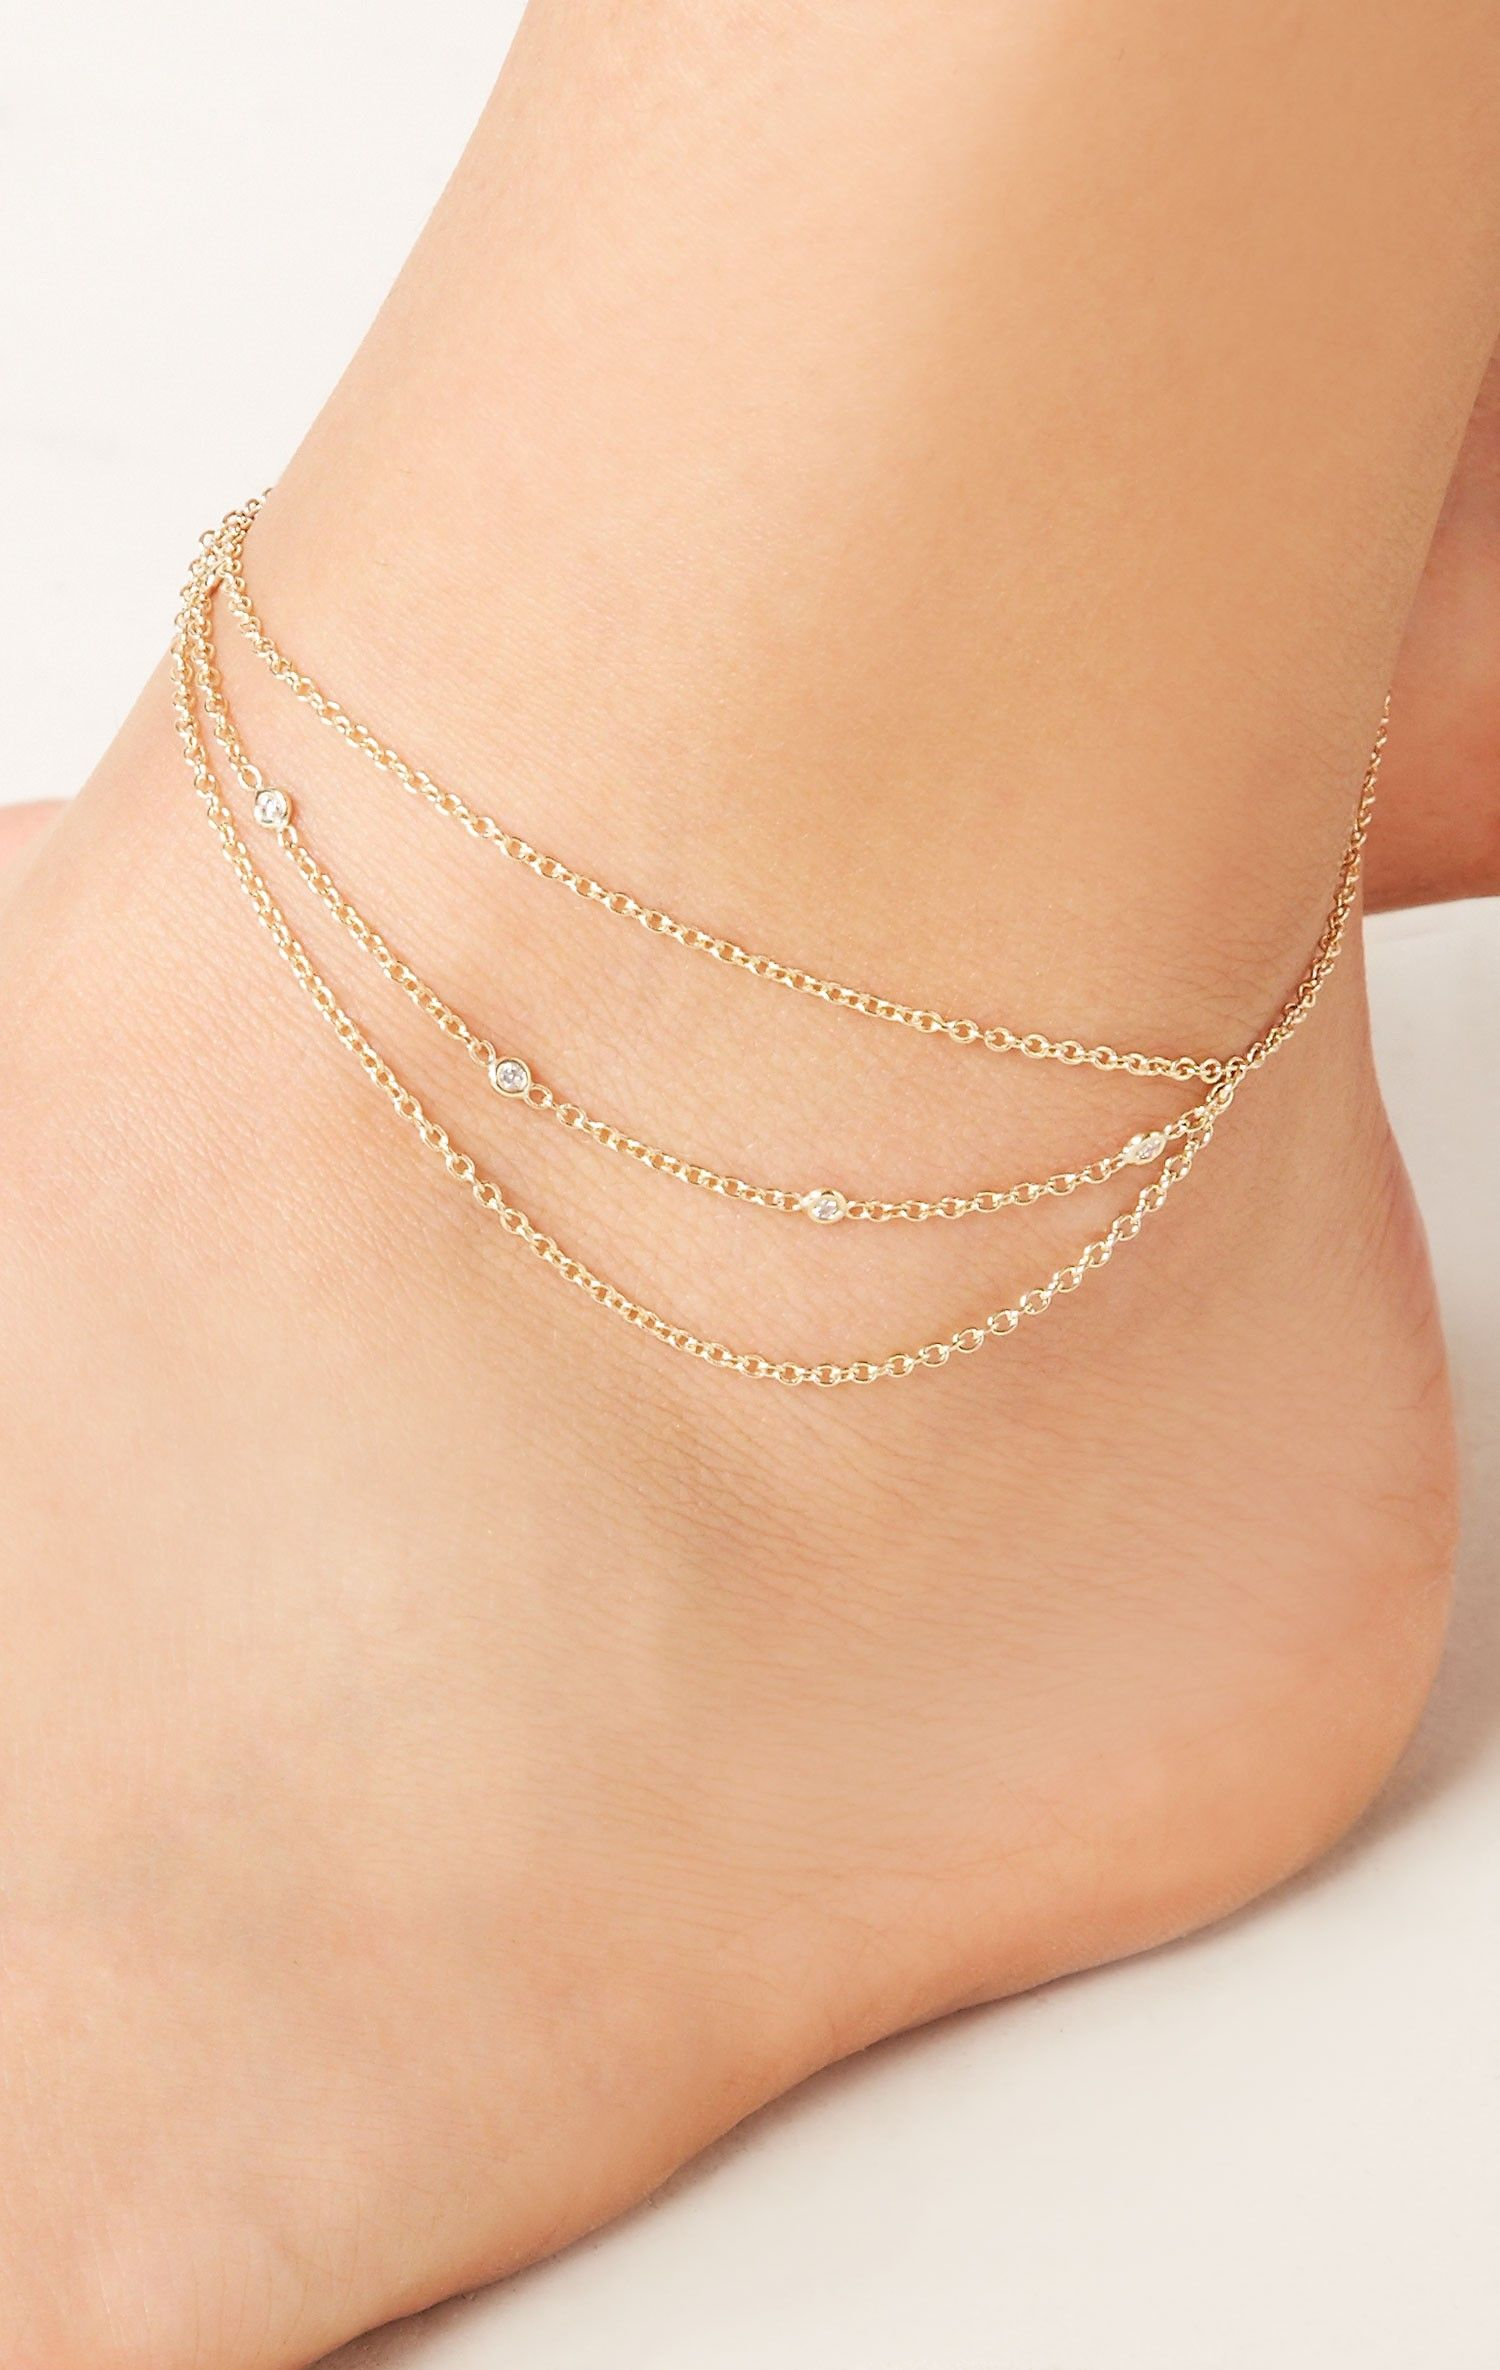 gold anklet watches chain index